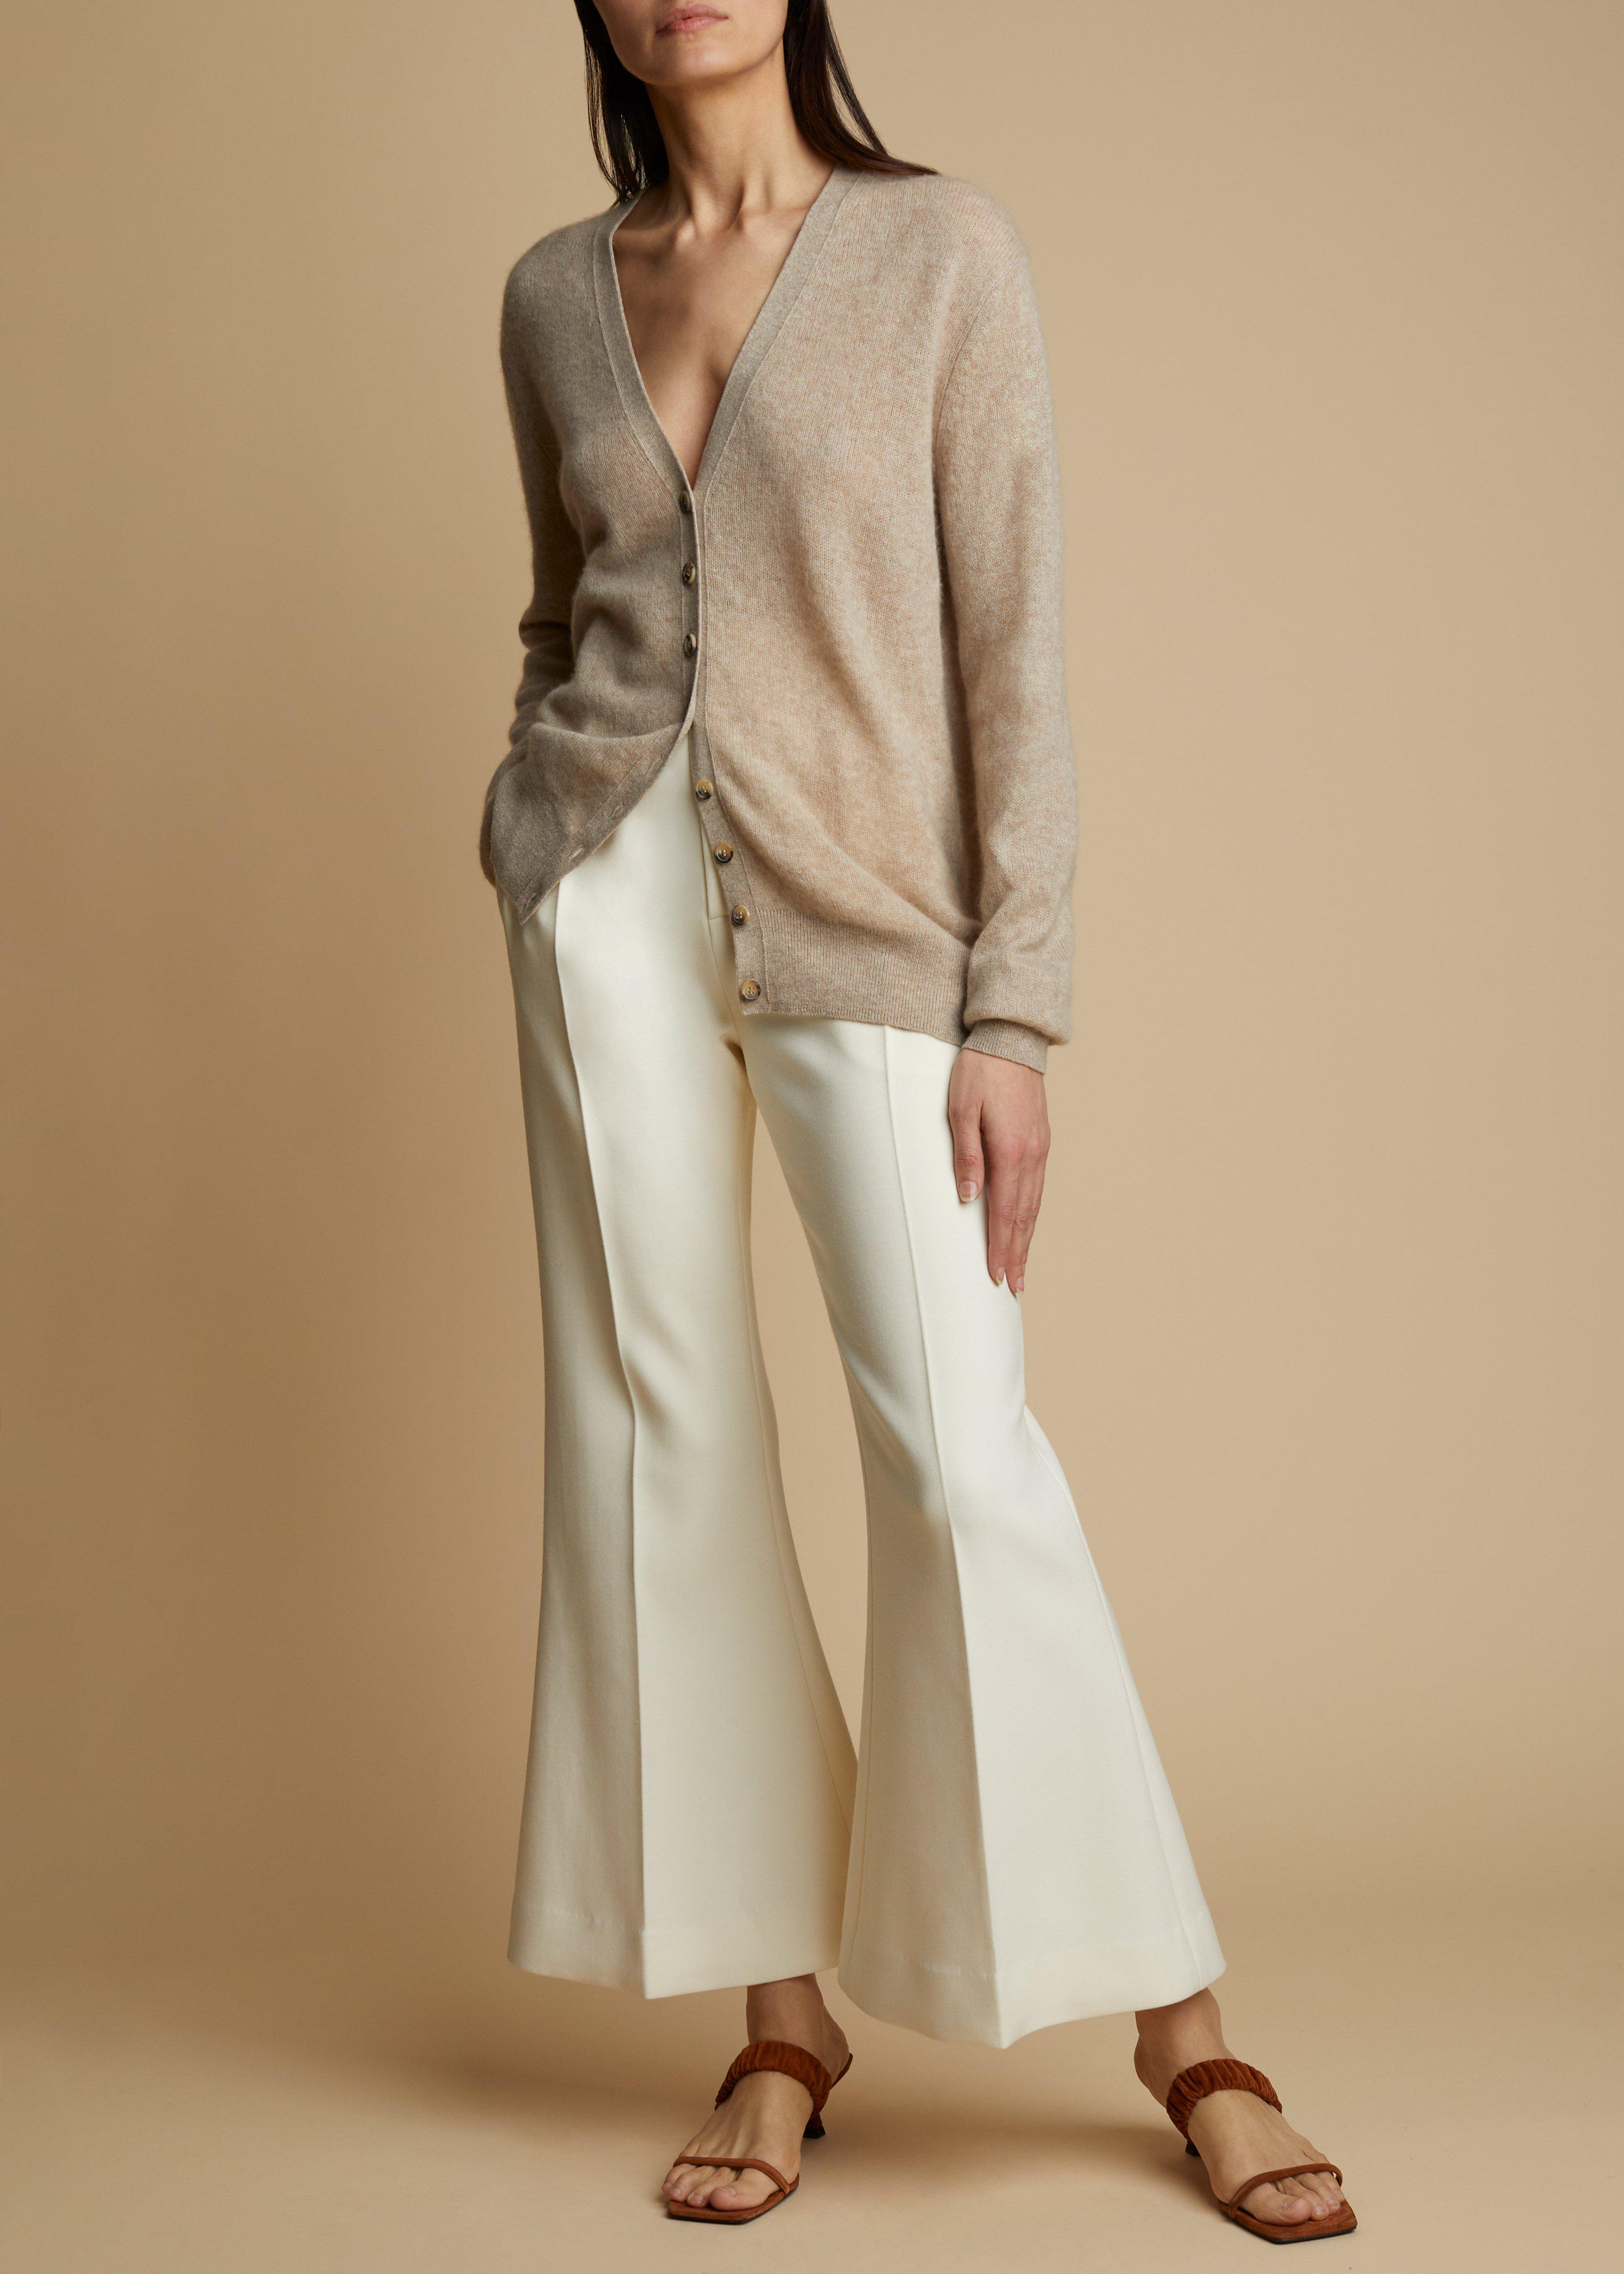 The Hattie Pant in Ivory